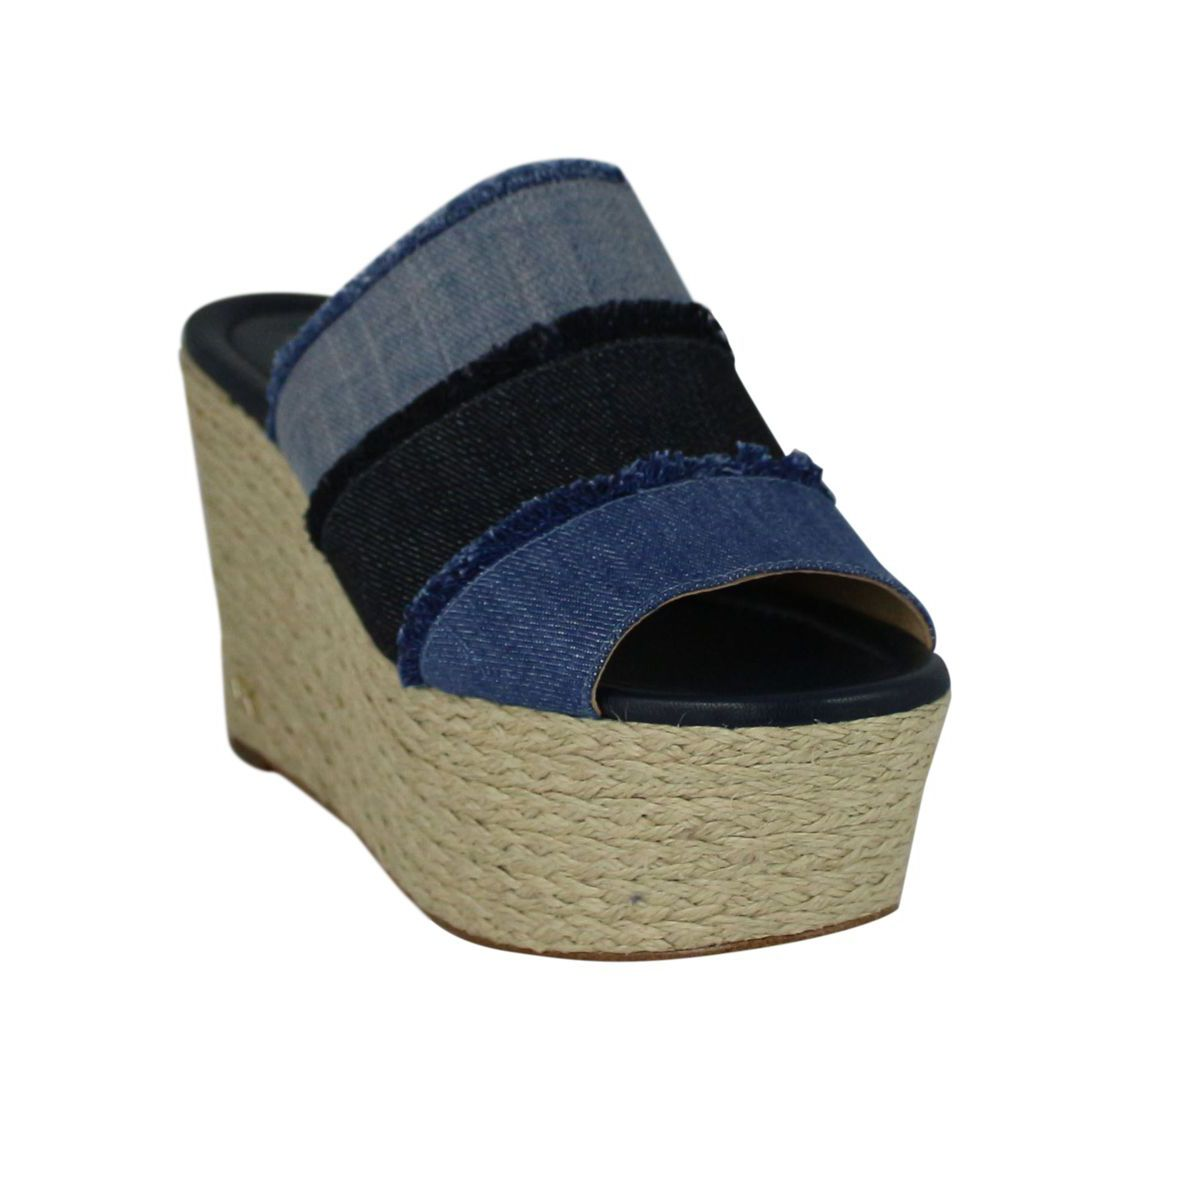 Cunningham Wedge striped sandal Denim Michael Kors